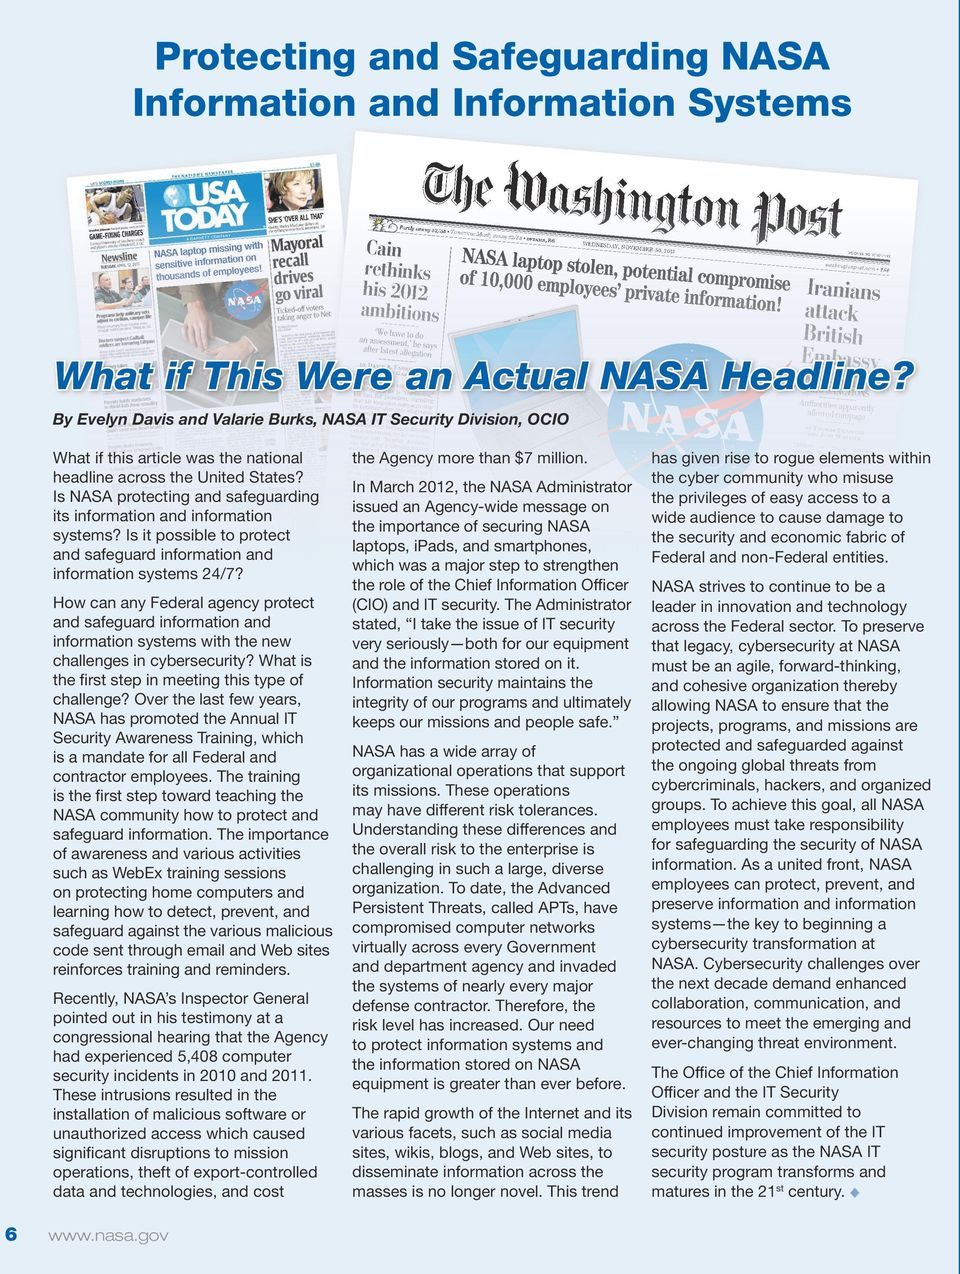 Is NASA protecting and safeguarding its information and information systems? Is it possible to protect and safeguard information and information systems 24/7?